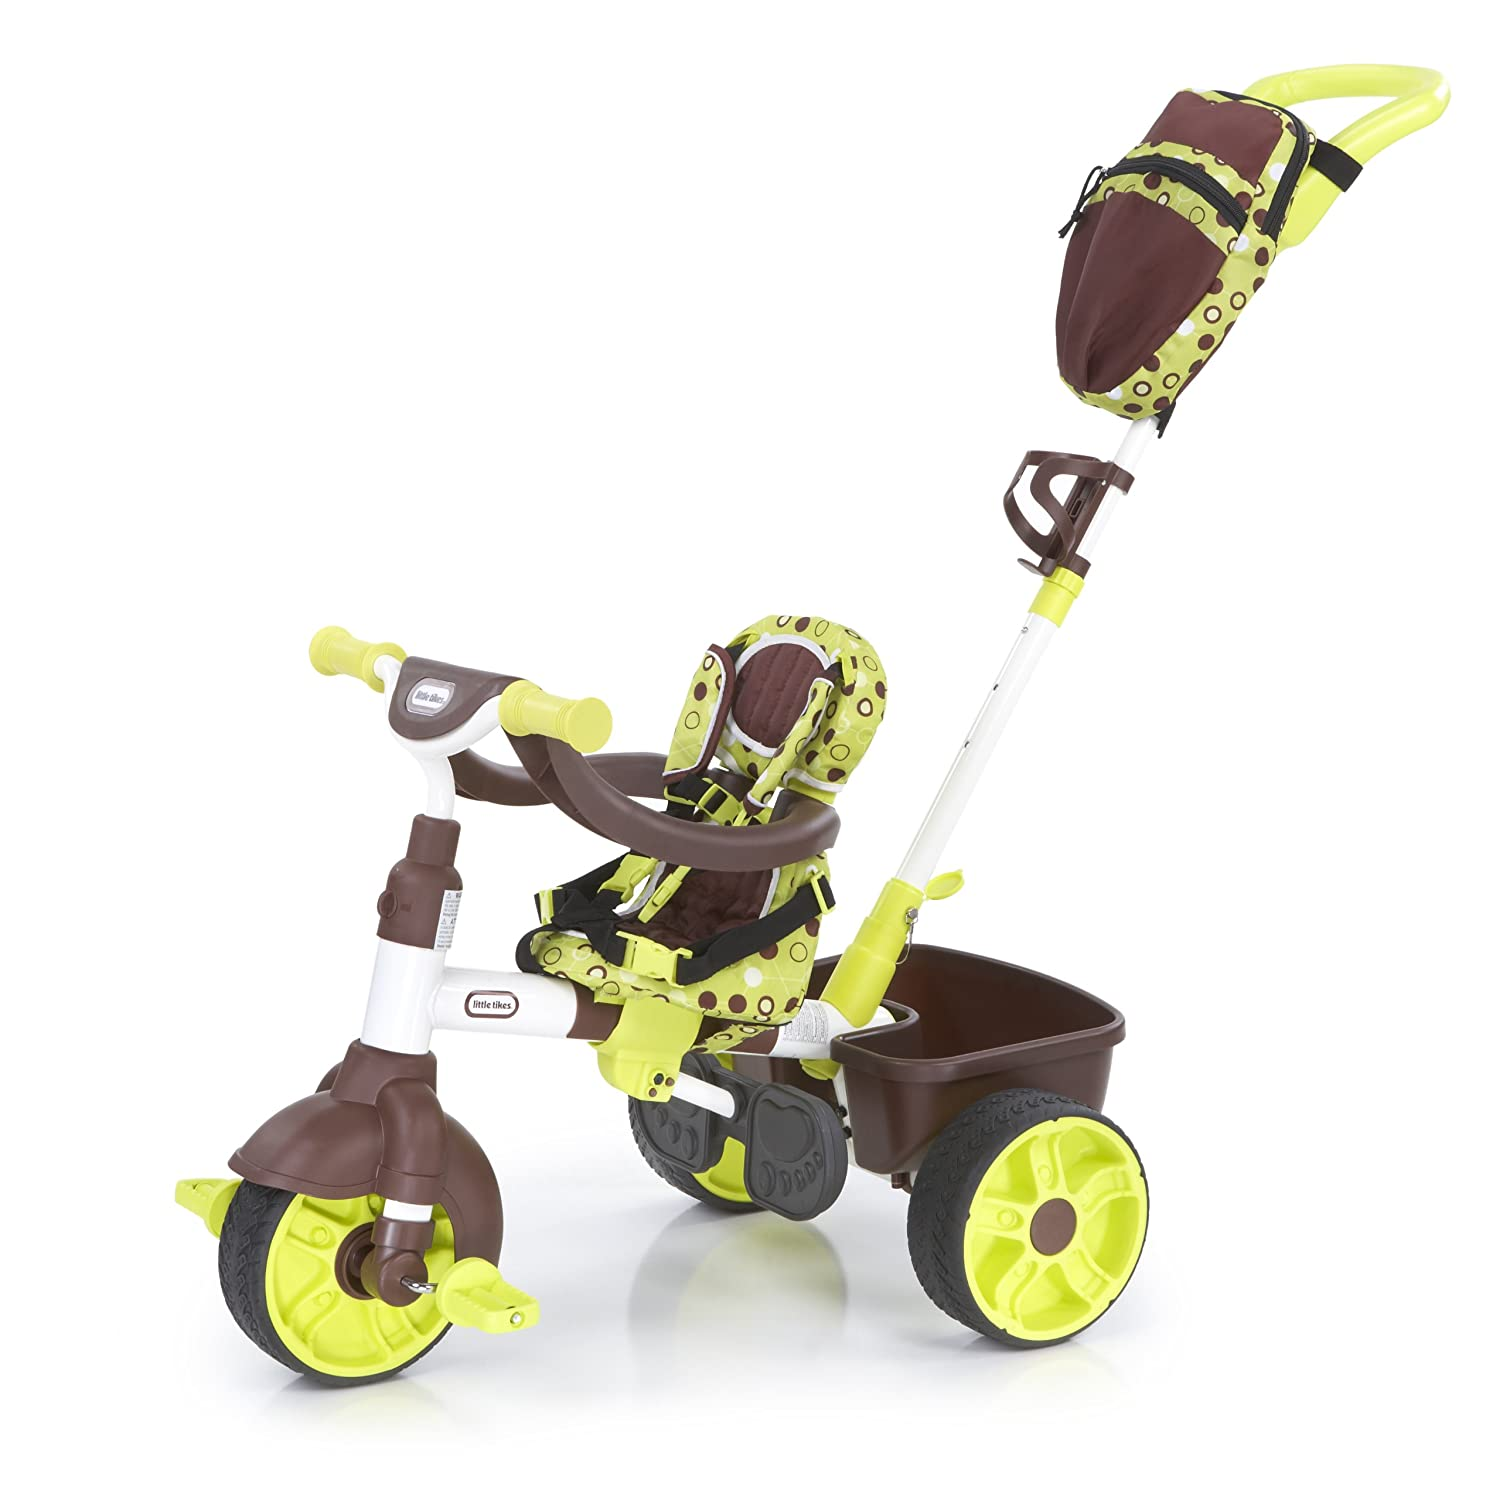 An Image of Little Tikes 4-in-1 Green Deluxe Edition Trike